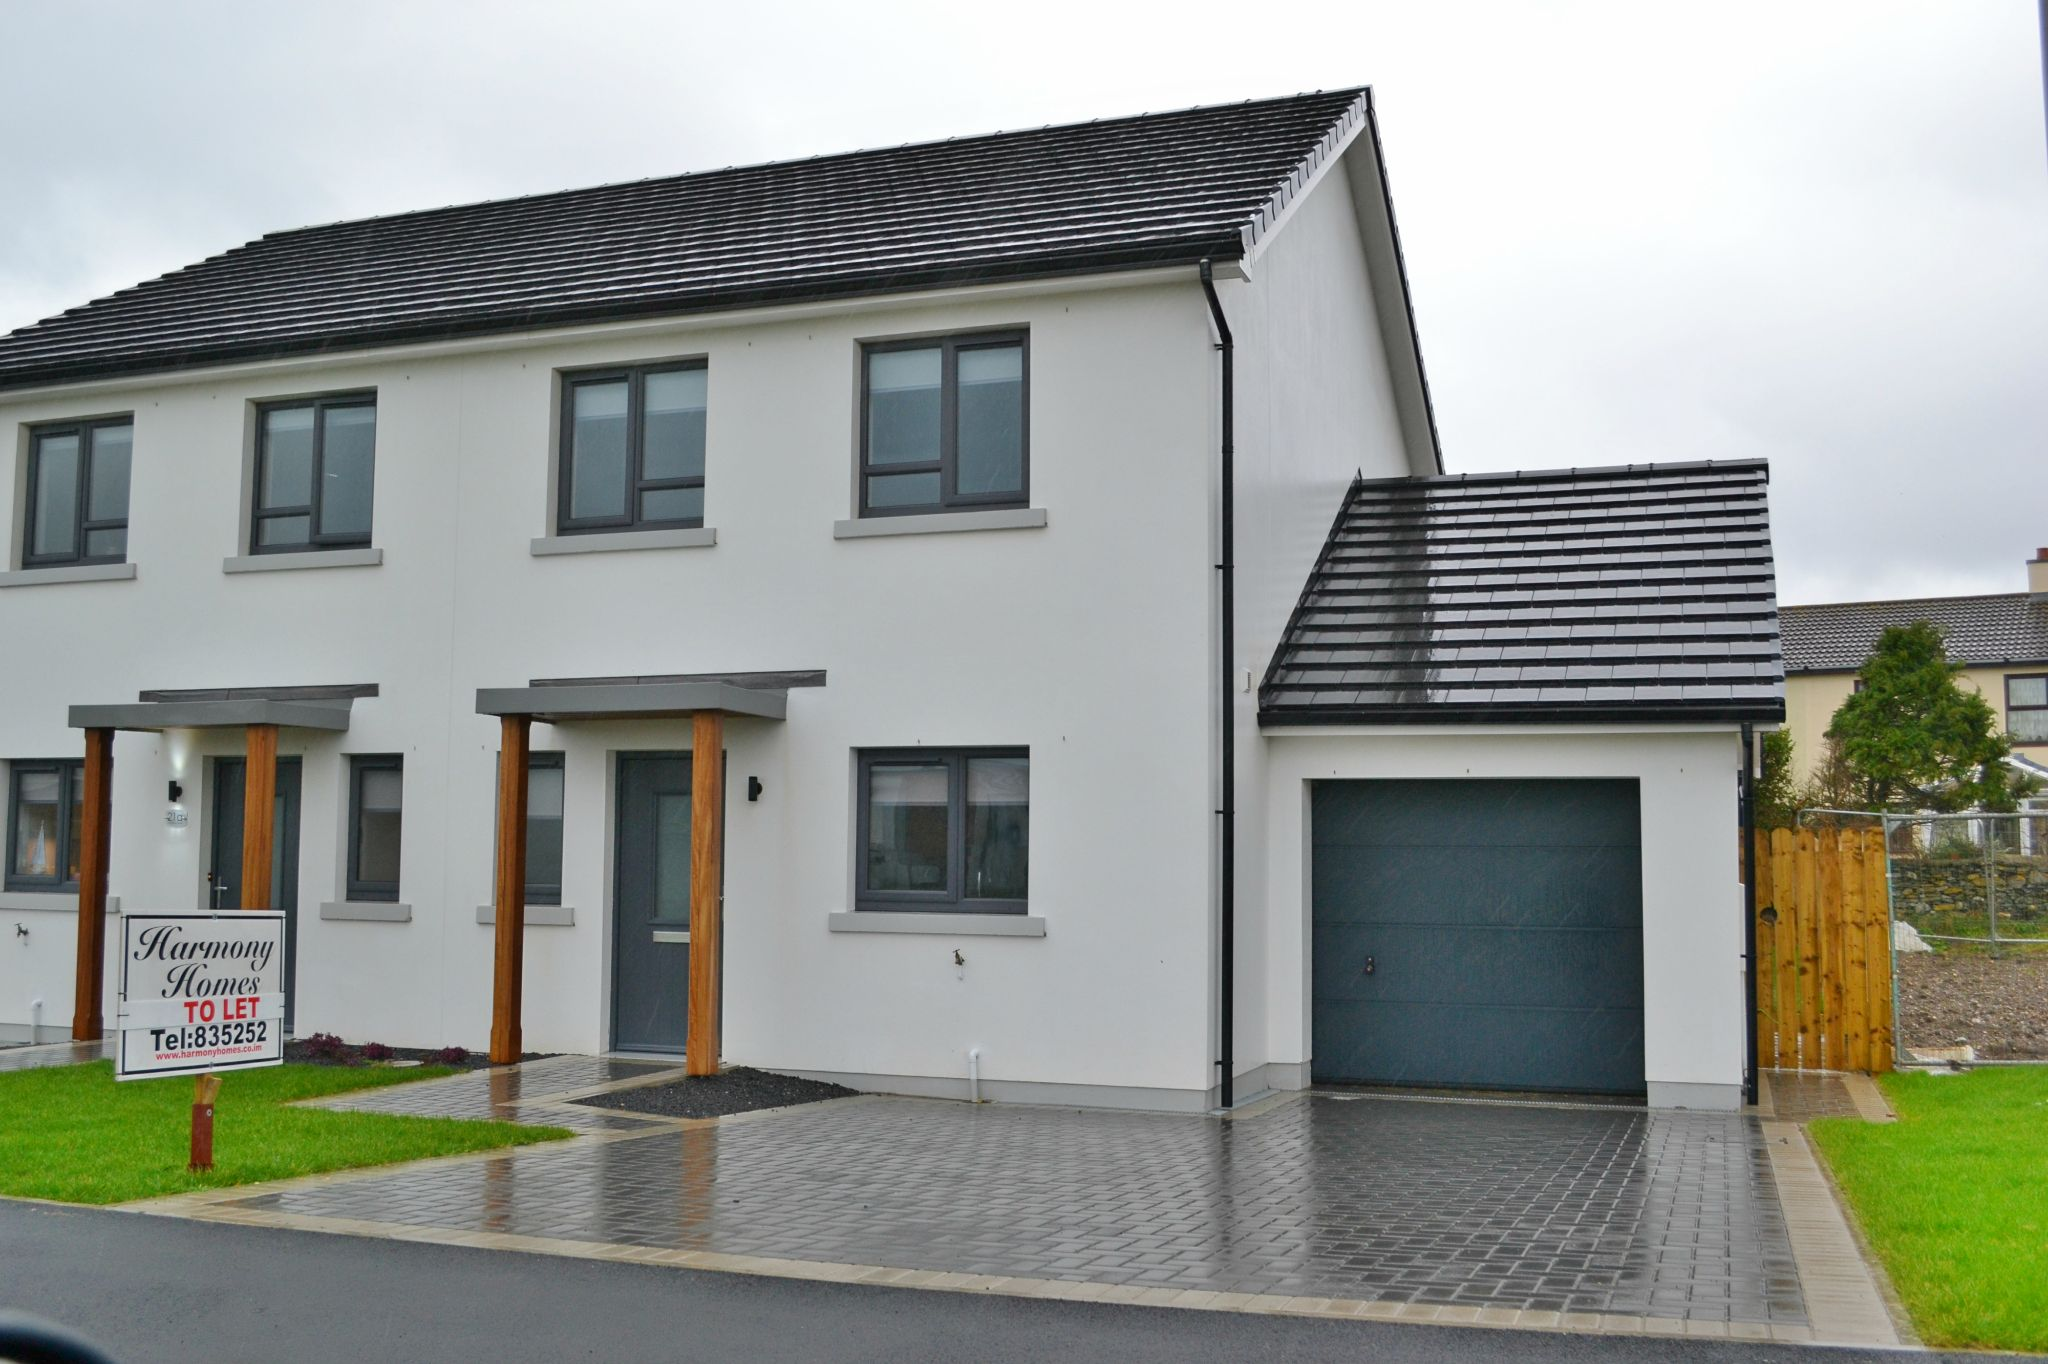 3 bedroom semi-detached house To Let in Port St Mary - Floorplan 1